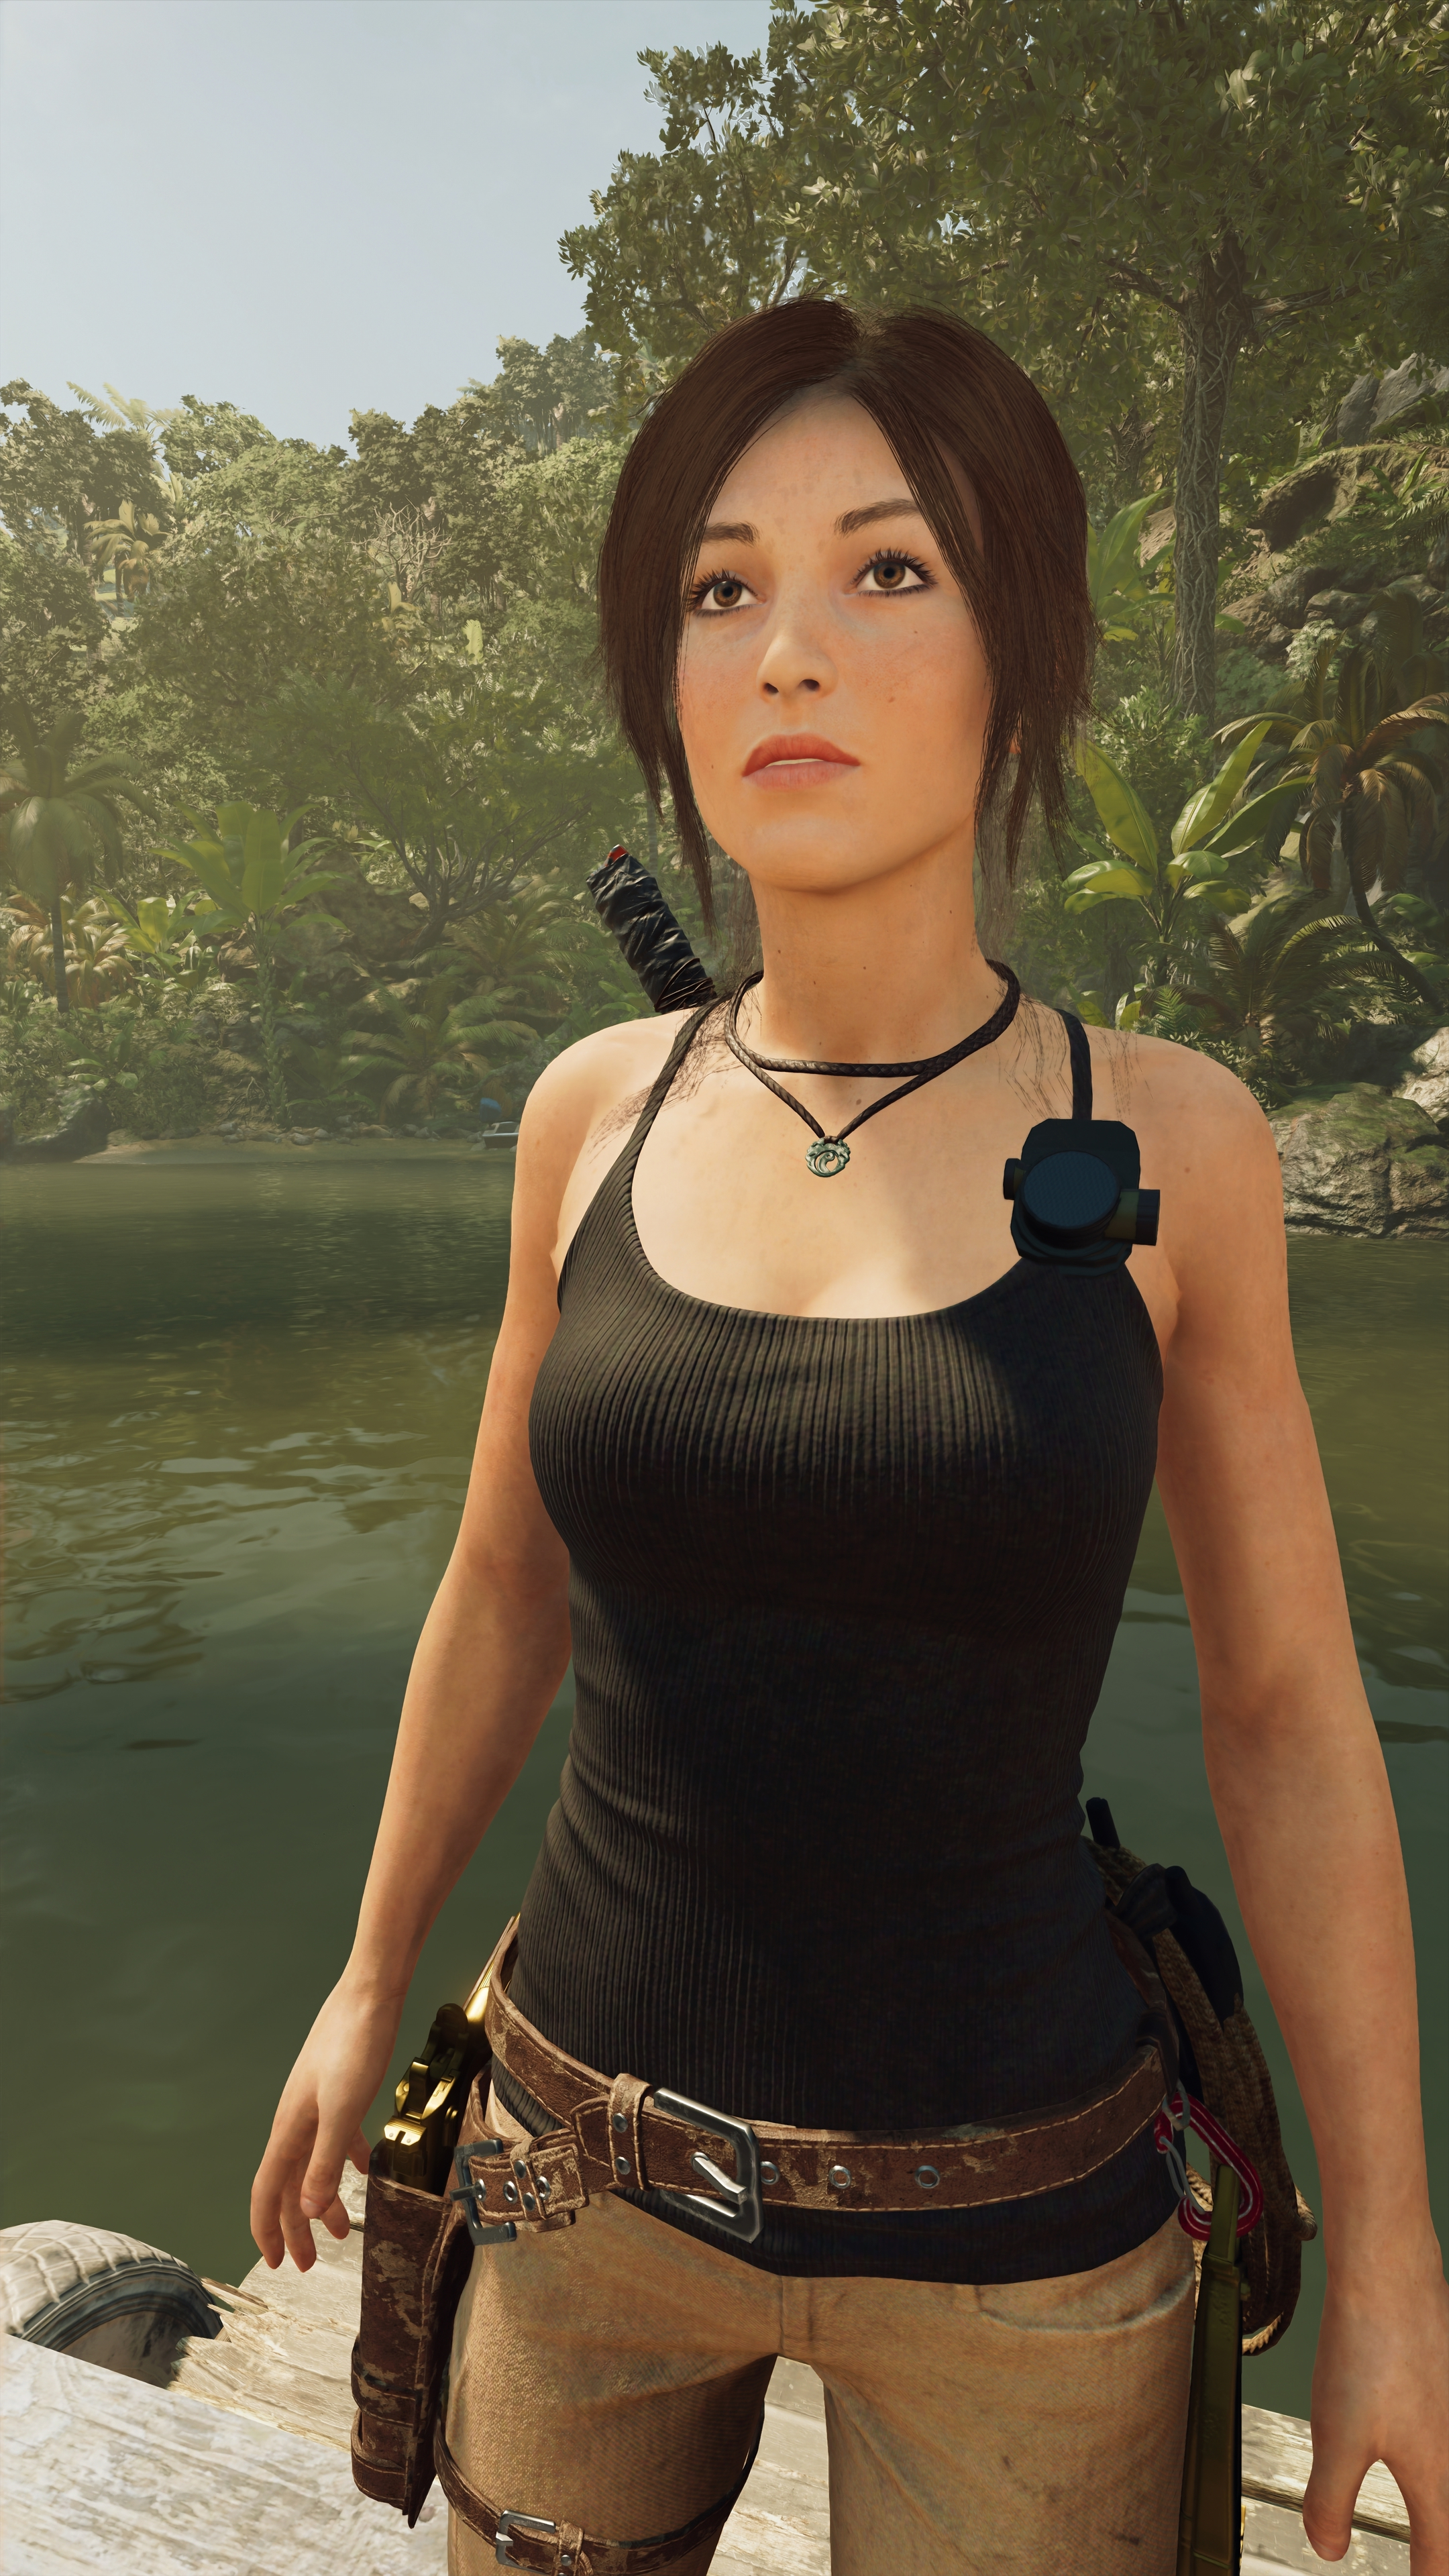 Shadow of the Tomb Raider скриншот с GeForce RTX 2080 - Shadow of the Tomb Raider Лара Крофт